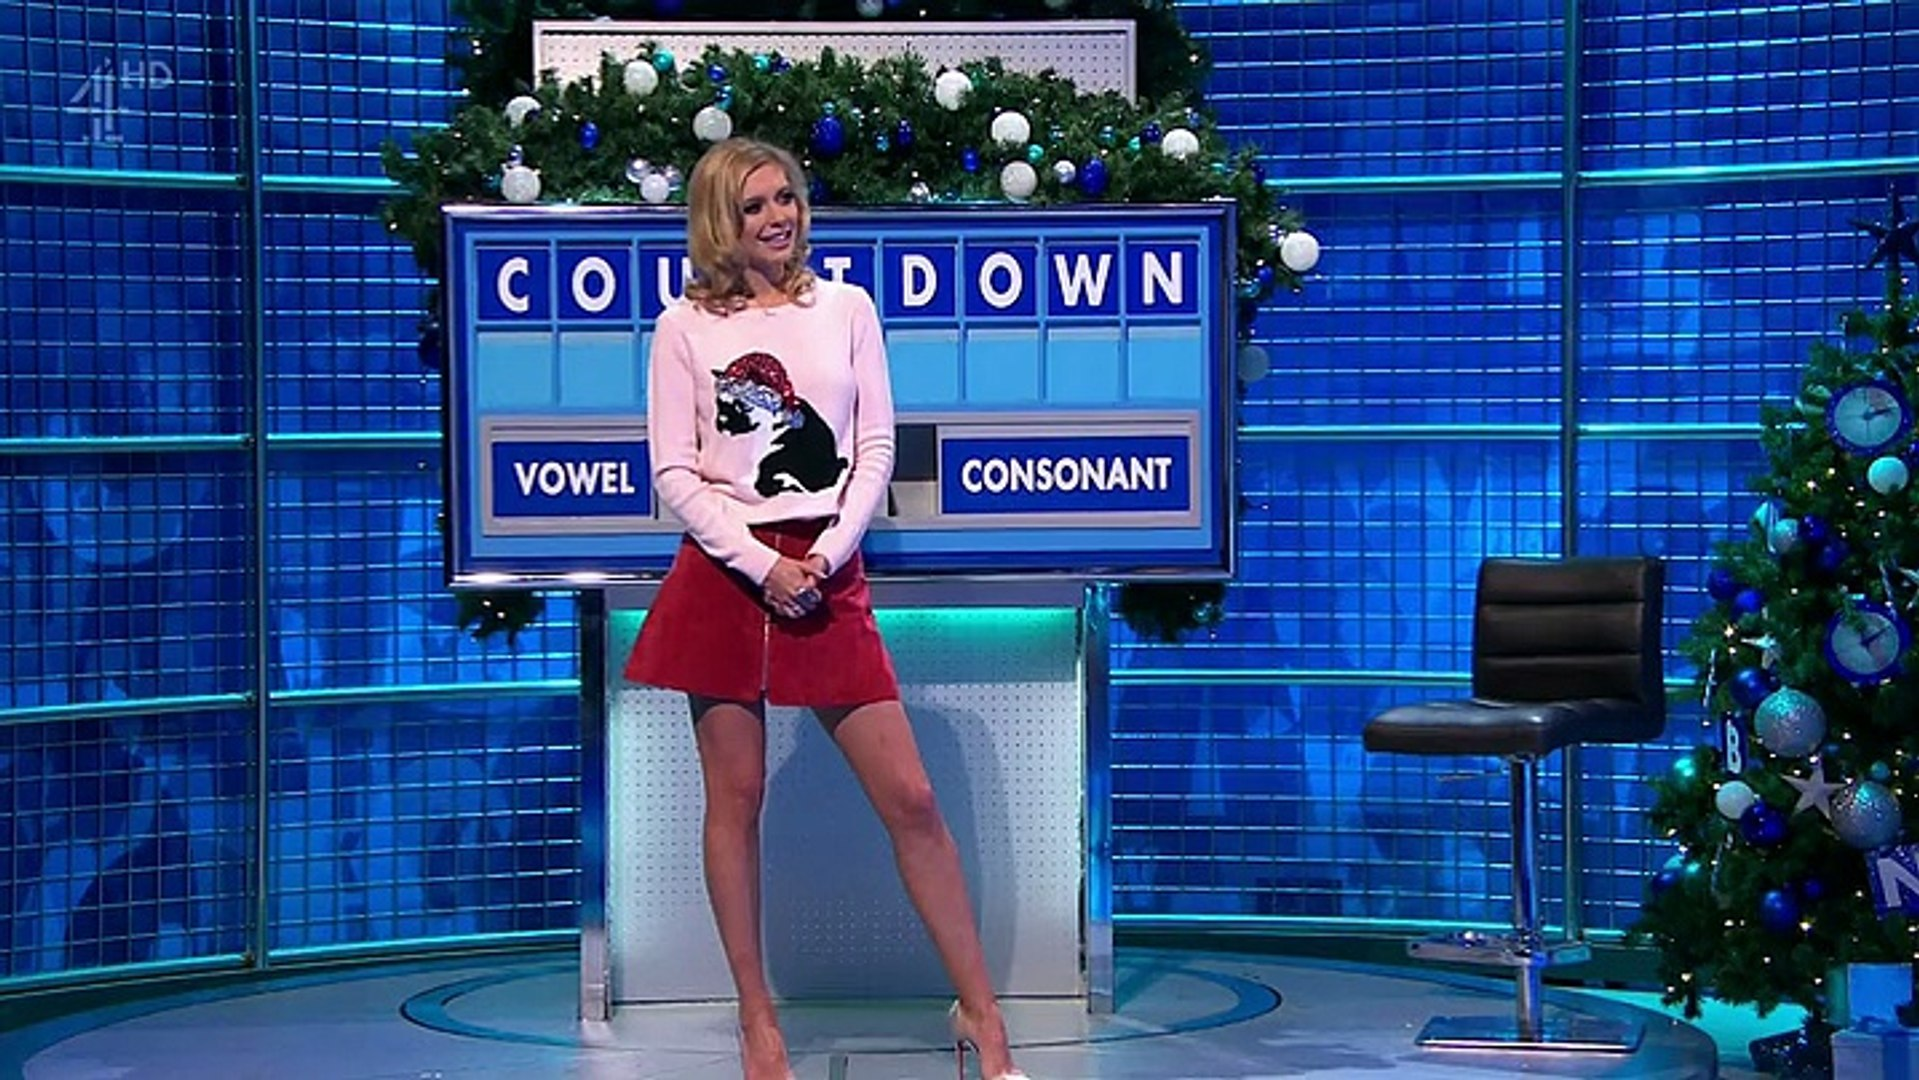 8 Out Of 10 Cats Does Countdown S09e08 Christmas Special Dailymotion Video